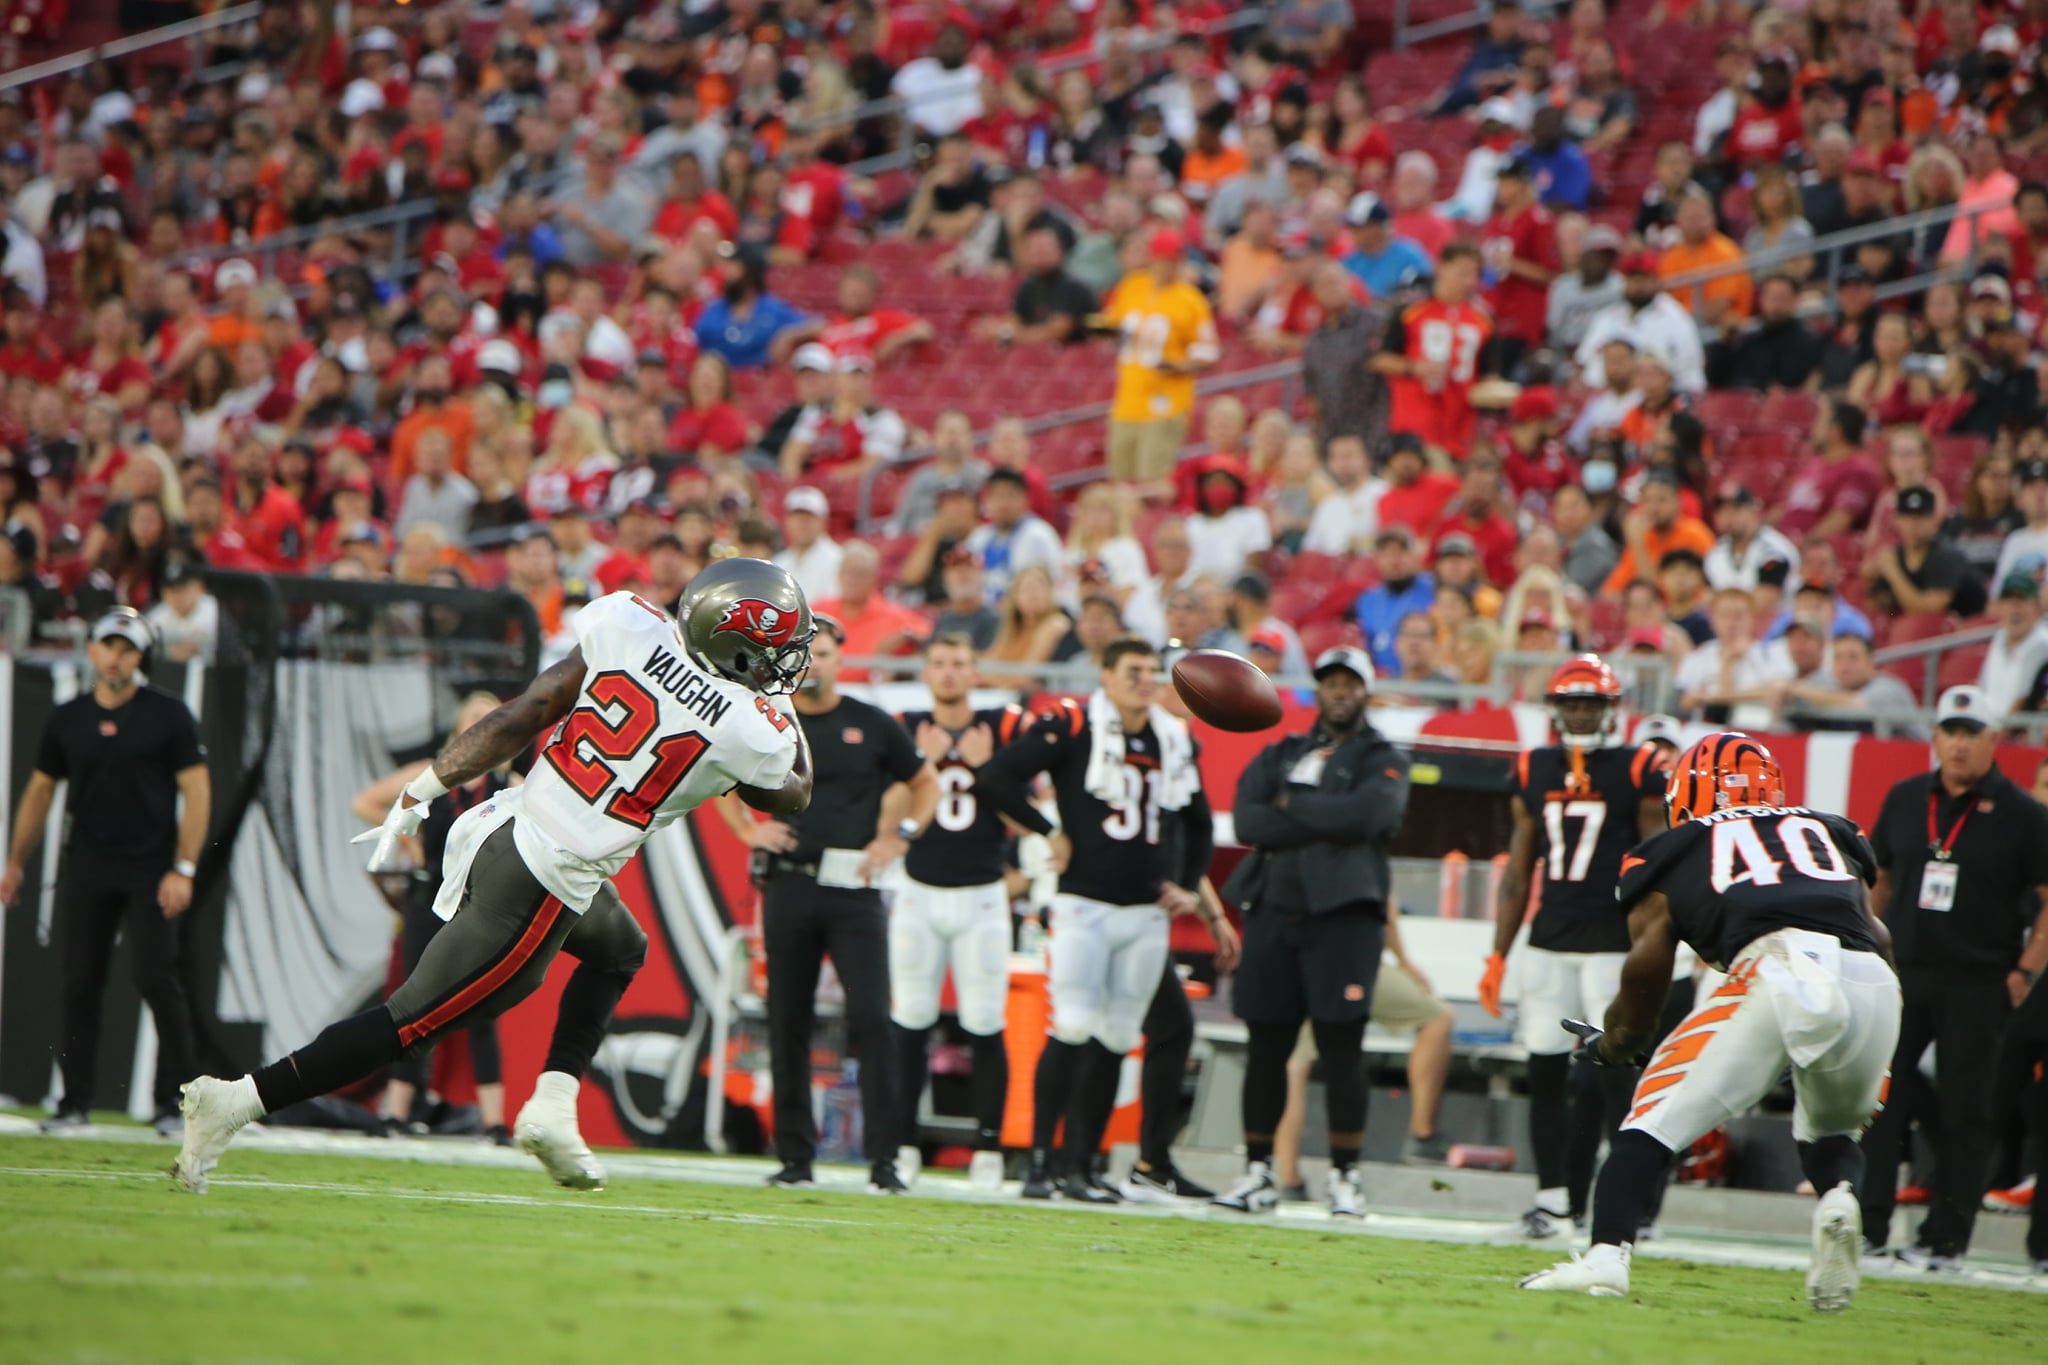 Tampa Bay Buccaneers' Ke'Shawn Vaughn (left) fights to recover a loose ball during the Buccaneers' match against the Cincinnati Bengals Saturday, August 14, 2021. Photo: Willie David/Florida National News.